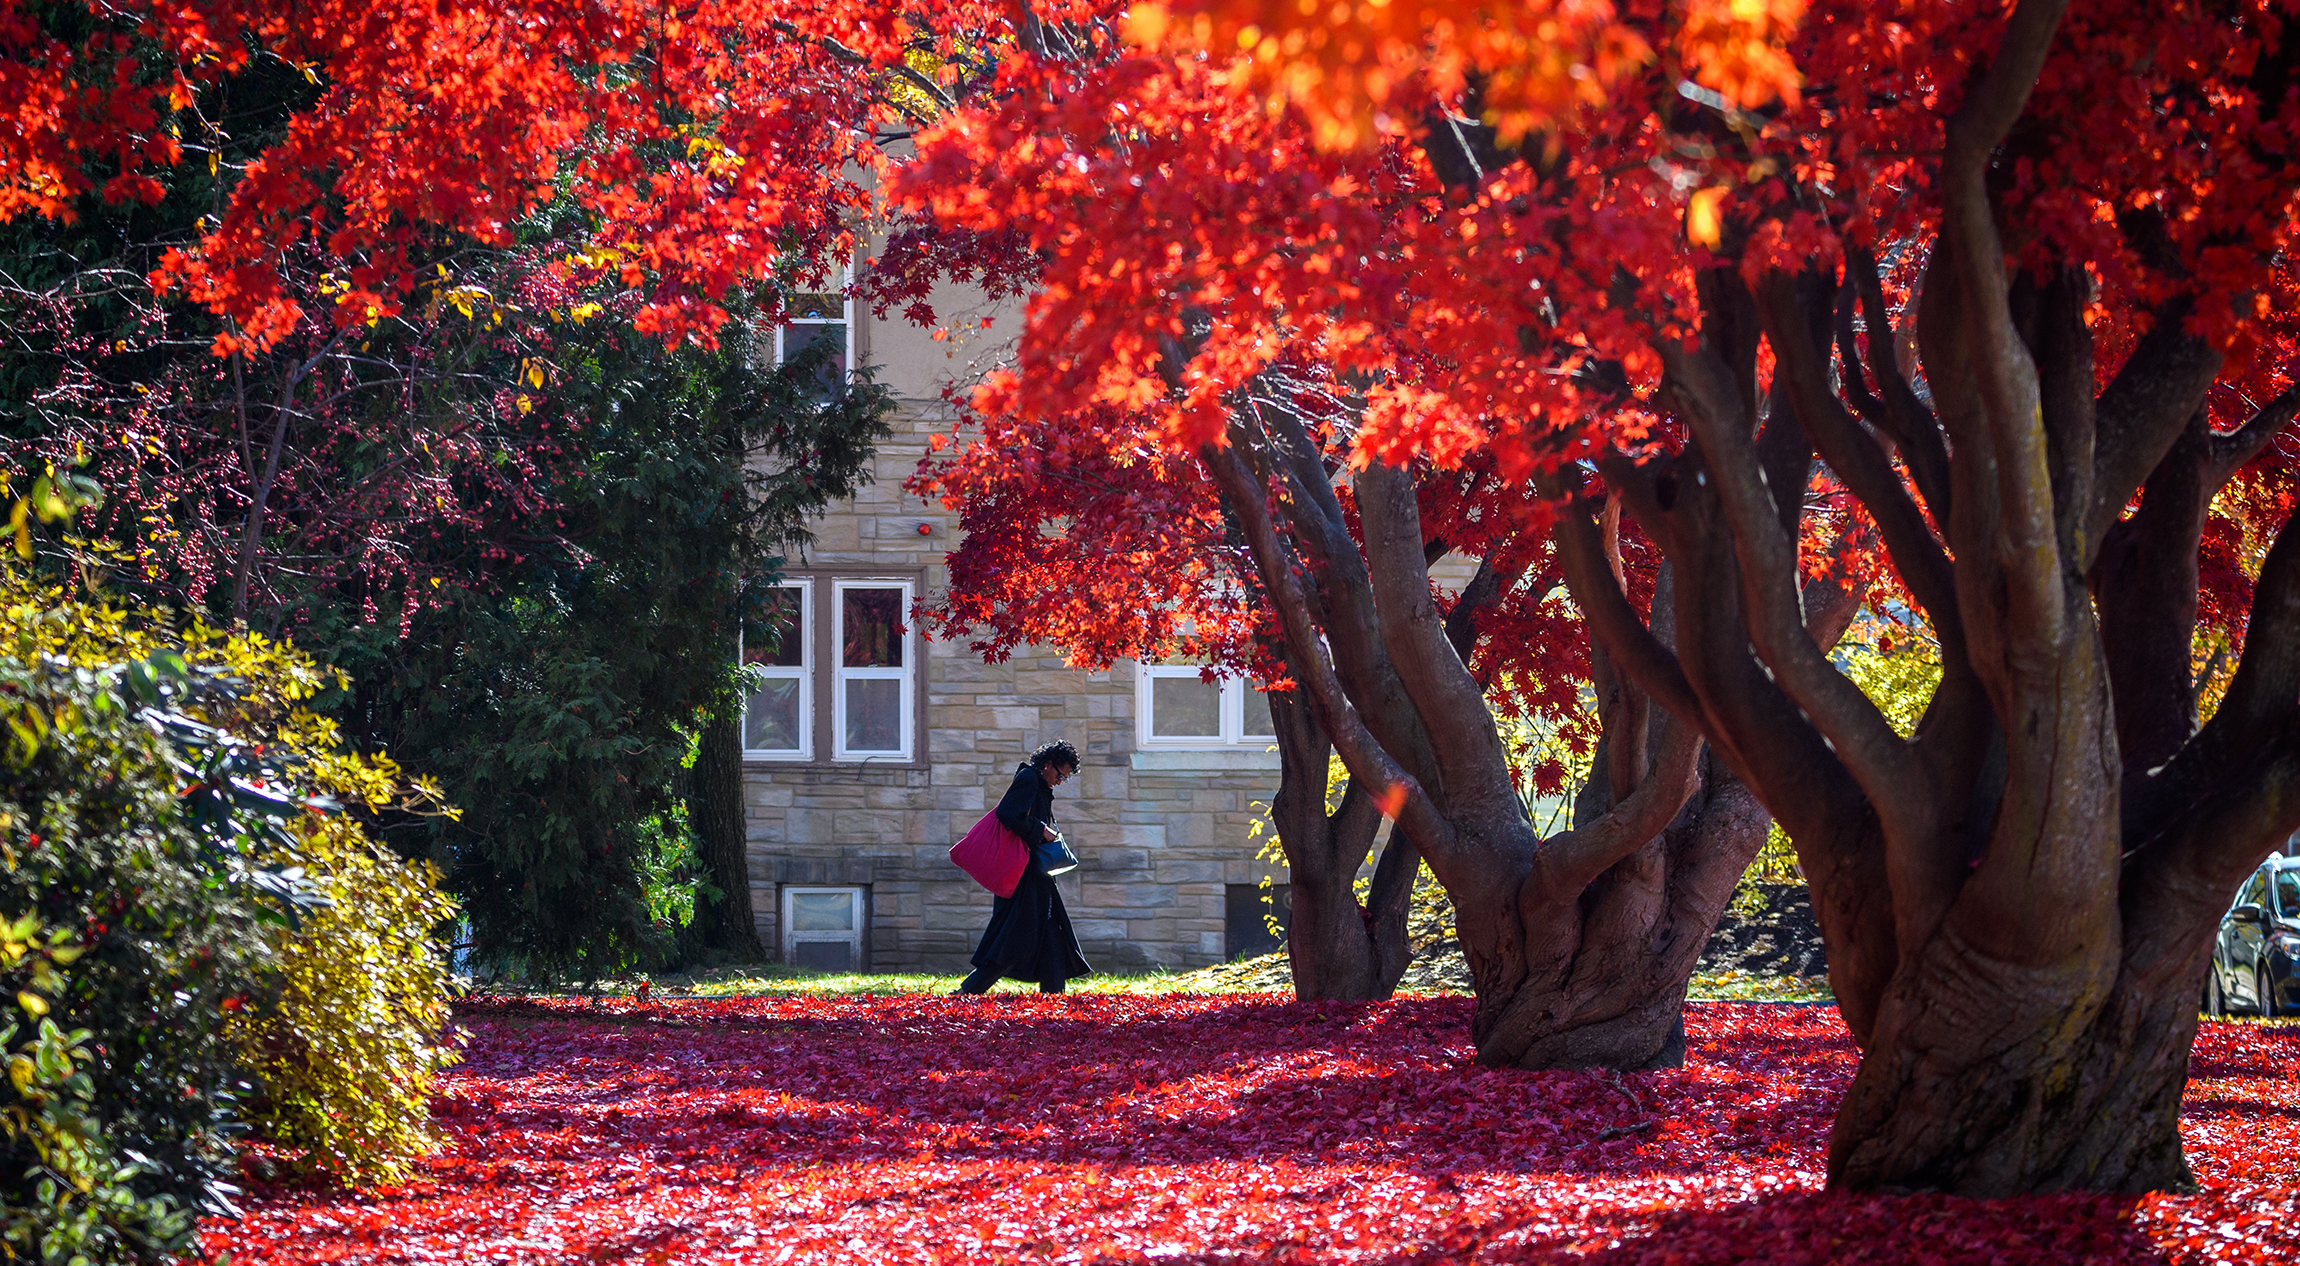 Woman walking under trees with fall foliage